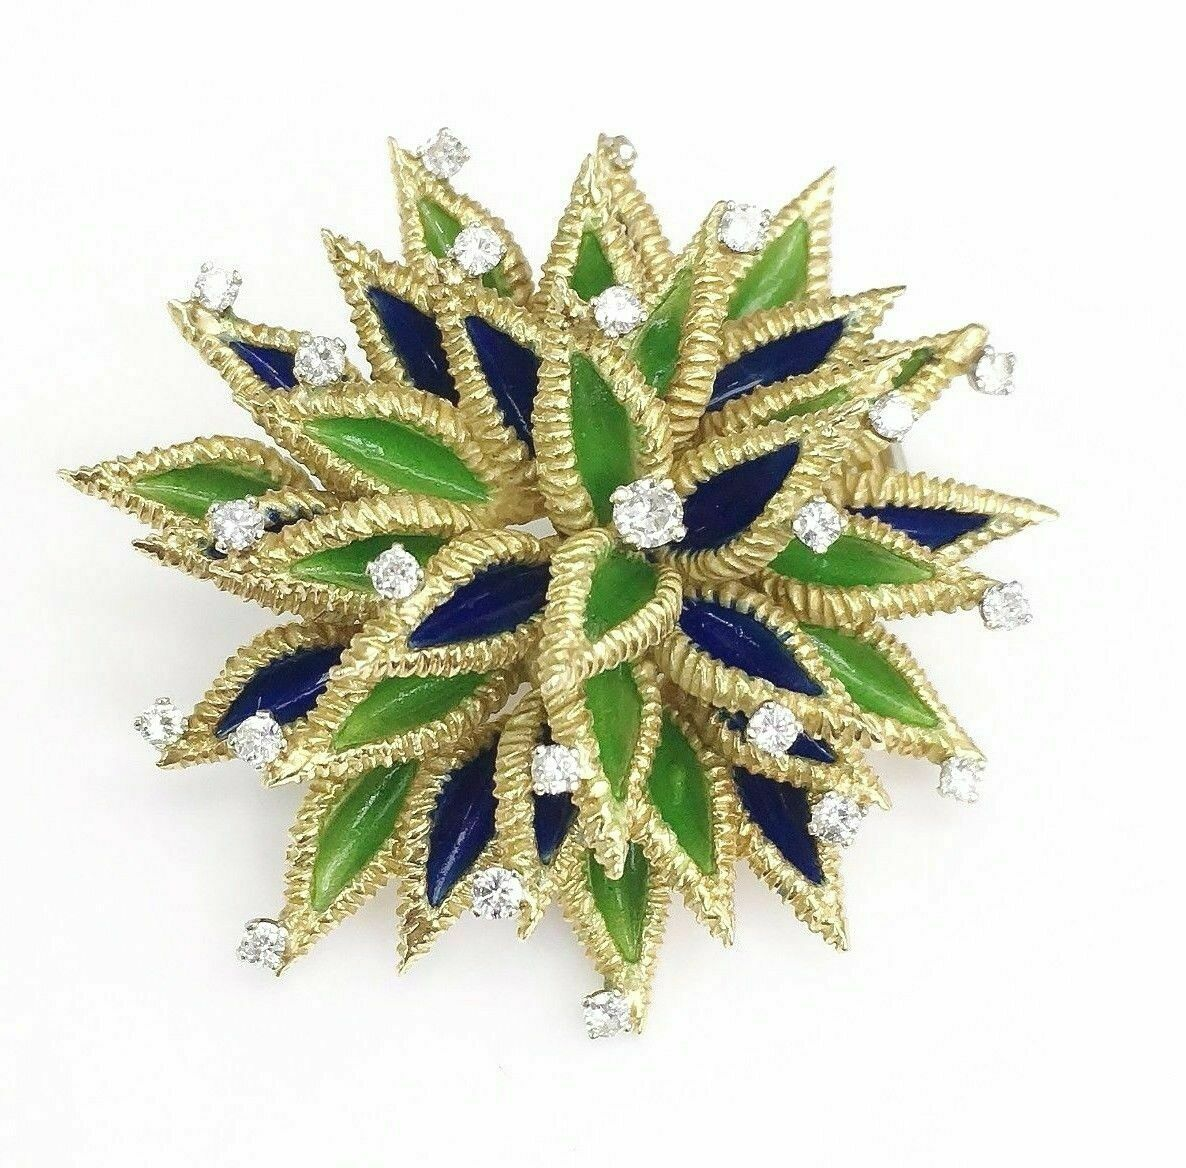 Vintage Custom Made 0.65 Carat Diamond and Enamel Pin/Brooch 18K Gold 30.2 Grams